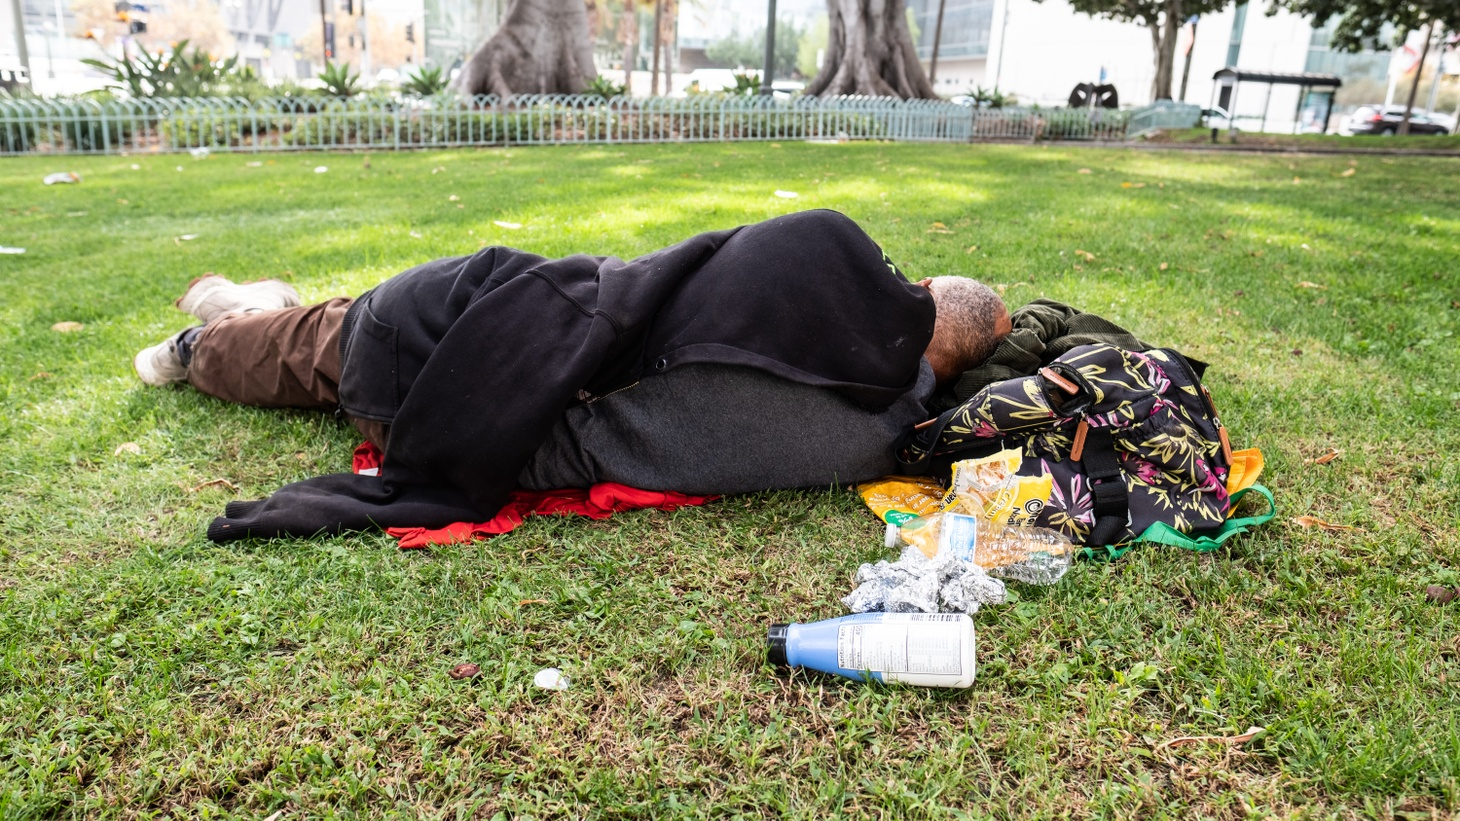 A homeless man sleeping on the lawn outside LA City Hall.